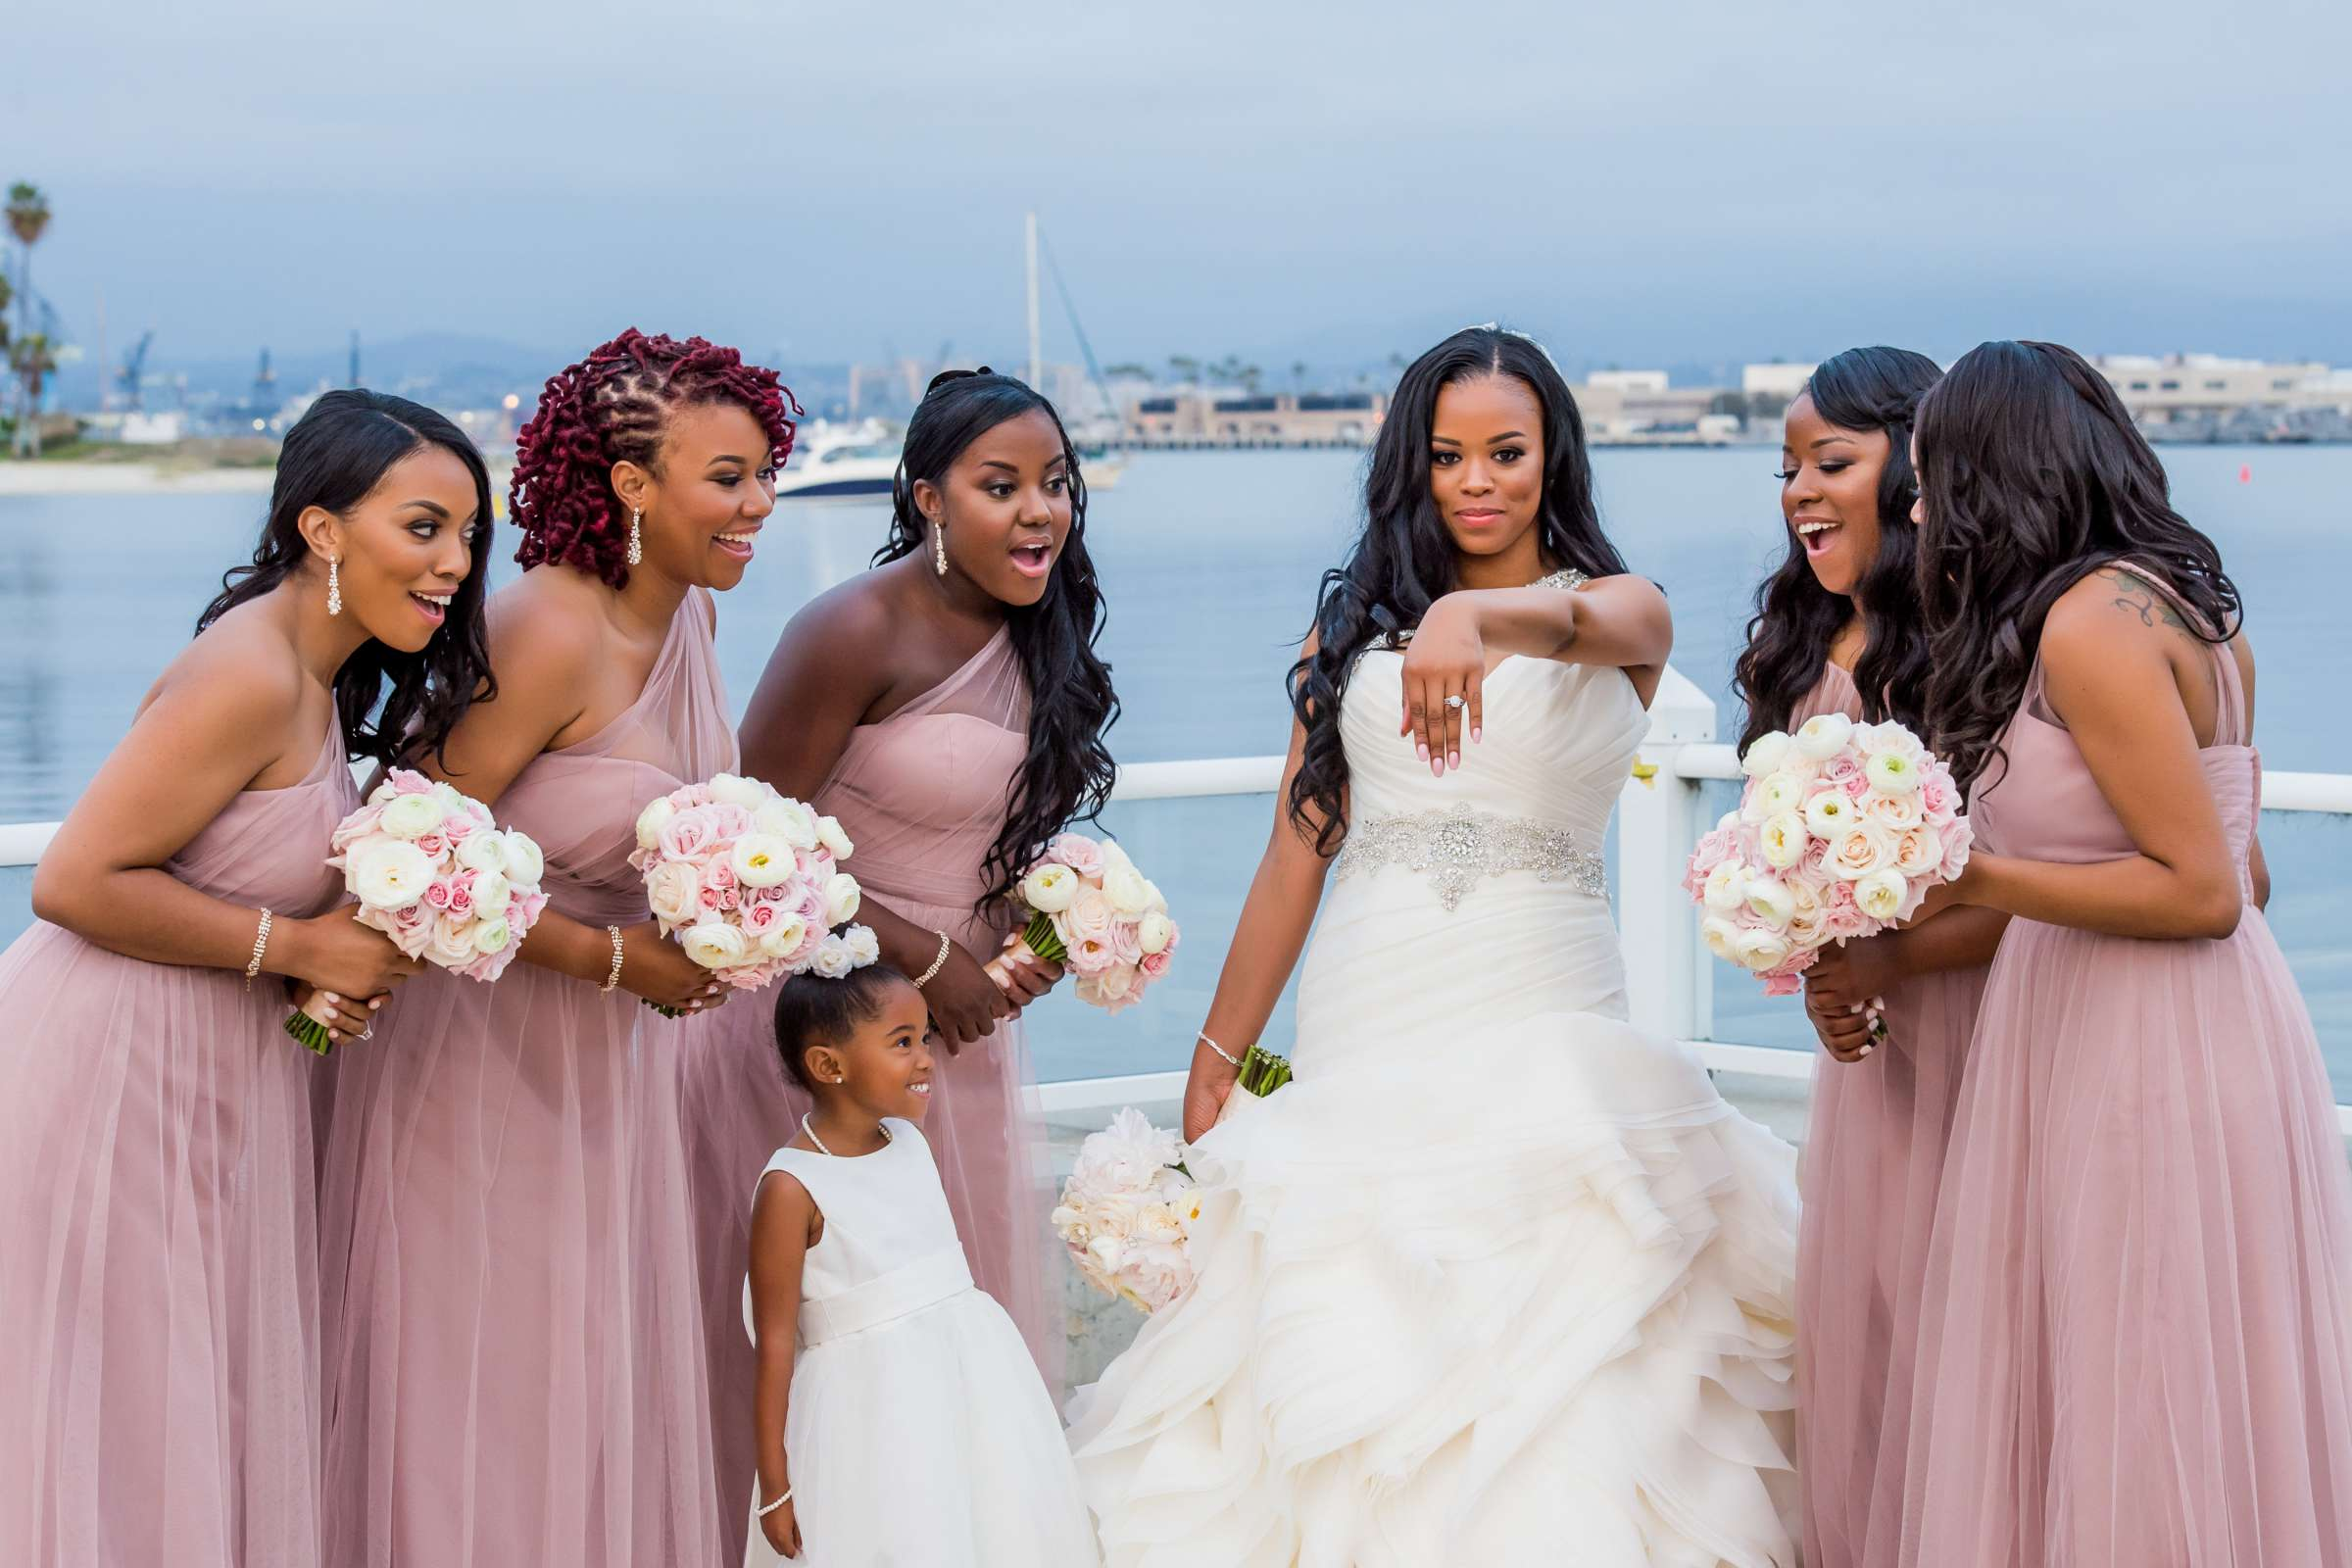 Coronado Community Center Wedding coordinated by First Comes Love Weddings & Events, Nikia and Charles Wedding Photo #31 by True Photography